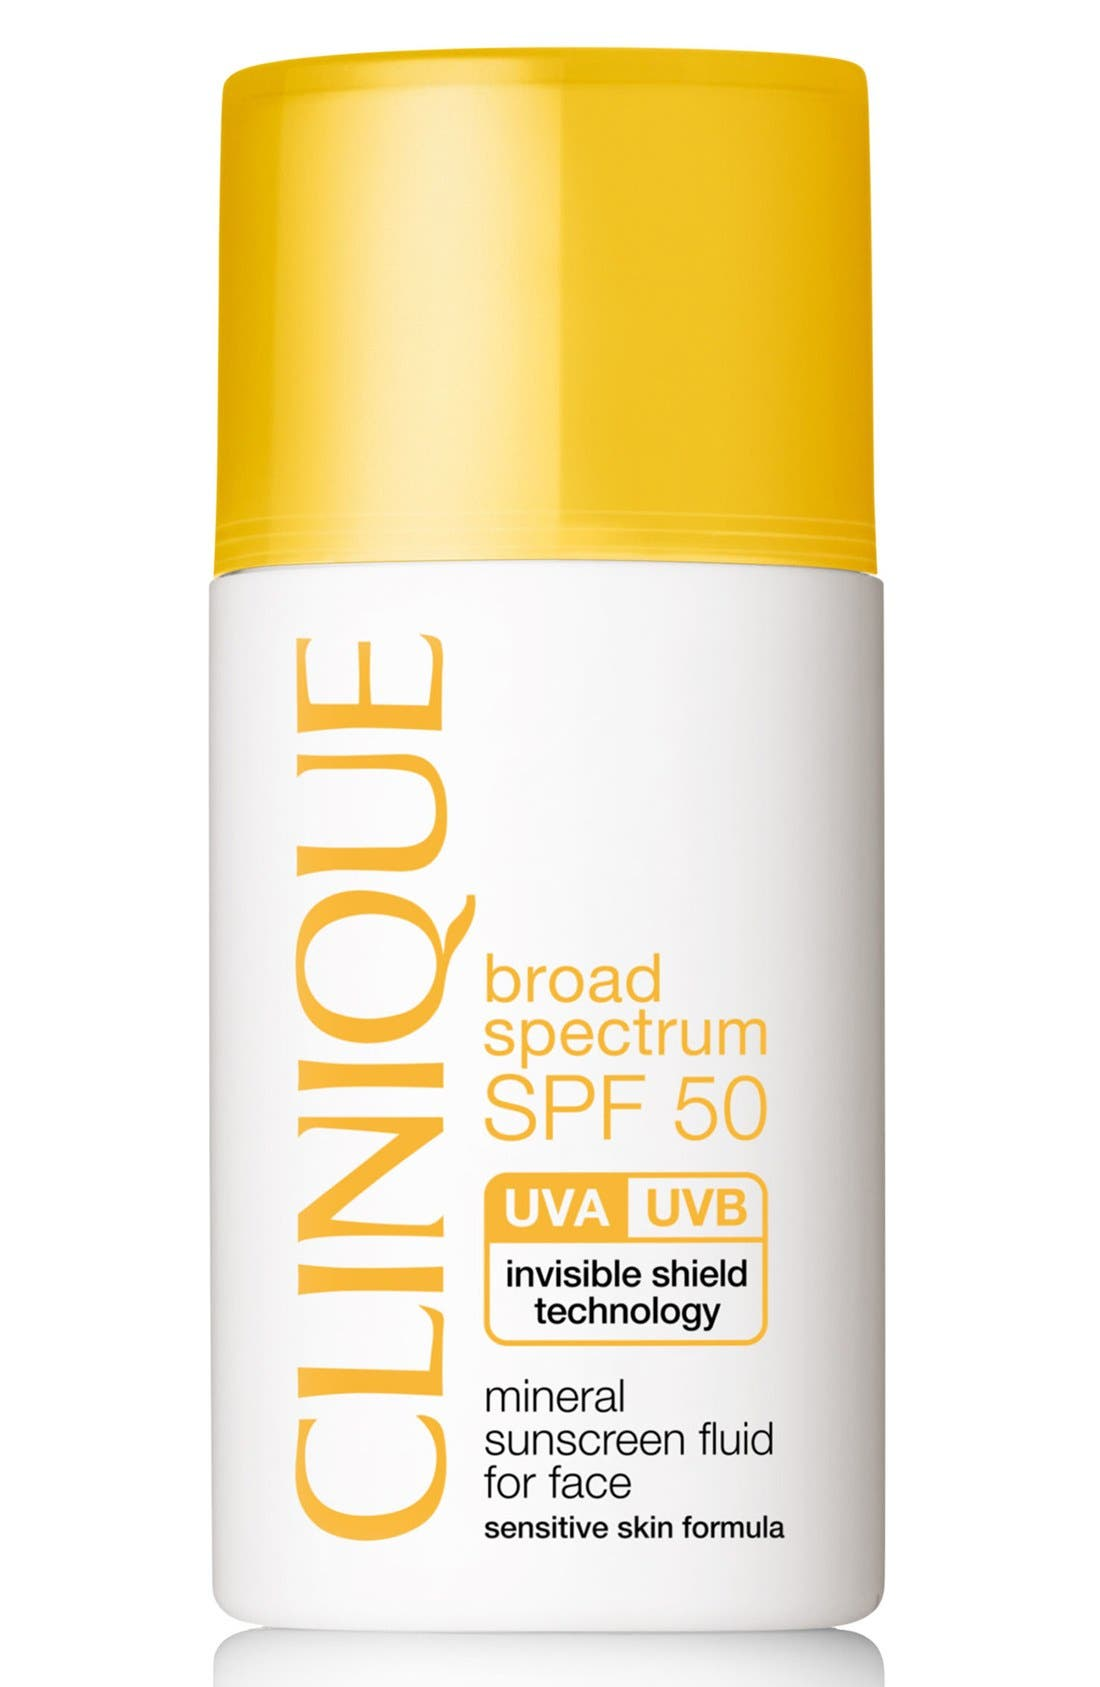 CLINIQUE Broad Spectrum SPF 50 Mineral Sunscreen Fluid for Face, Main, color, NO COLOR